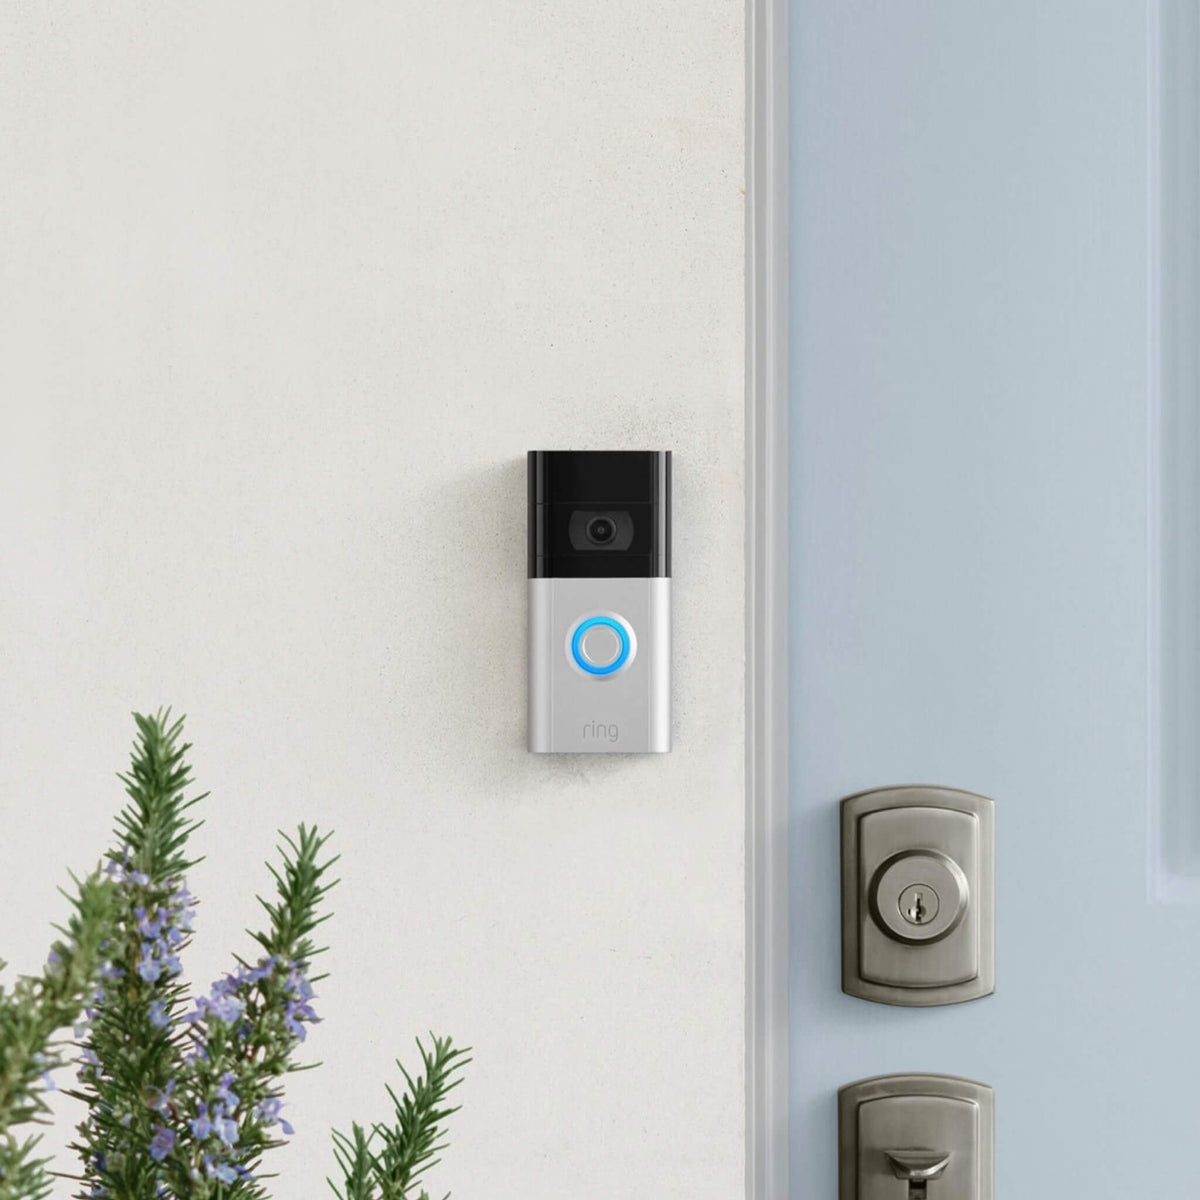 Ring Video Doorbell 3 Installation